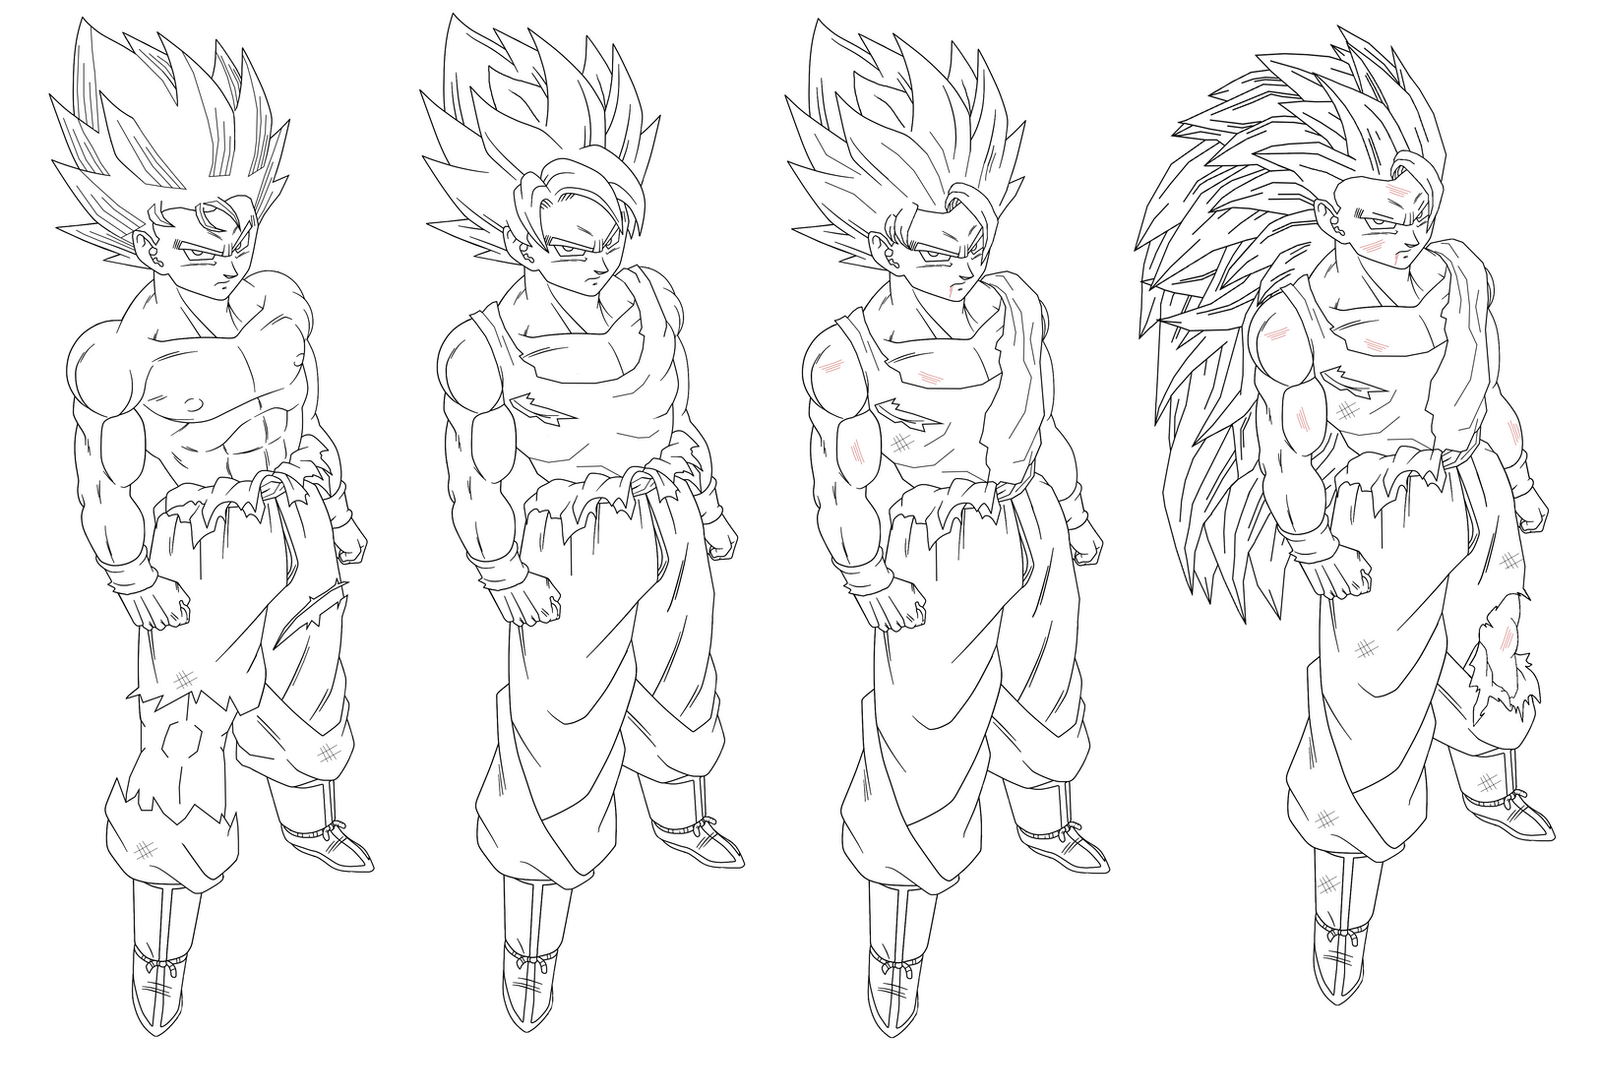 Ssj4 Gogeta Coloring Pages: Super Saiyan 4 Gogeta Coloring Coloring Pages